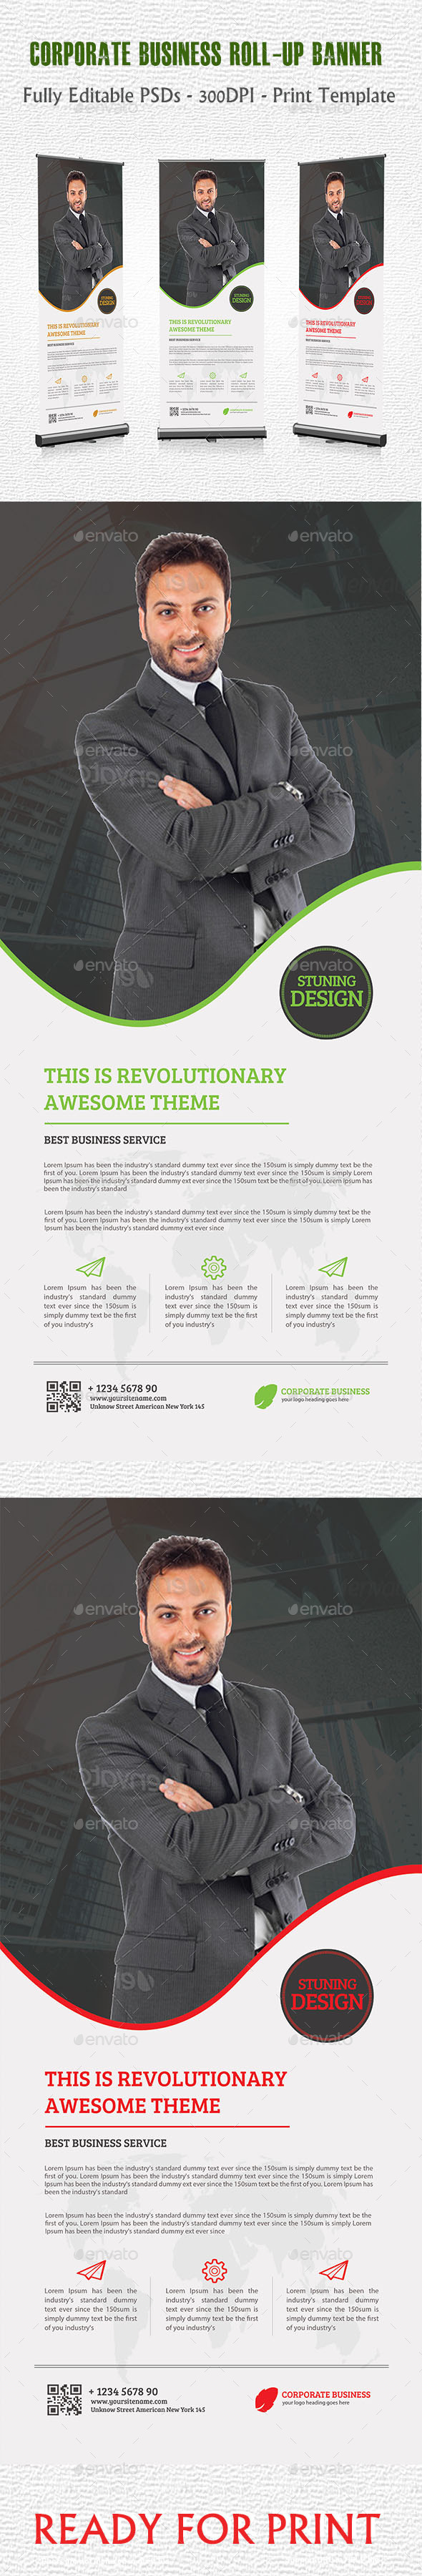 GraphicRiver Corporate Business Roll-up Banner 11460958